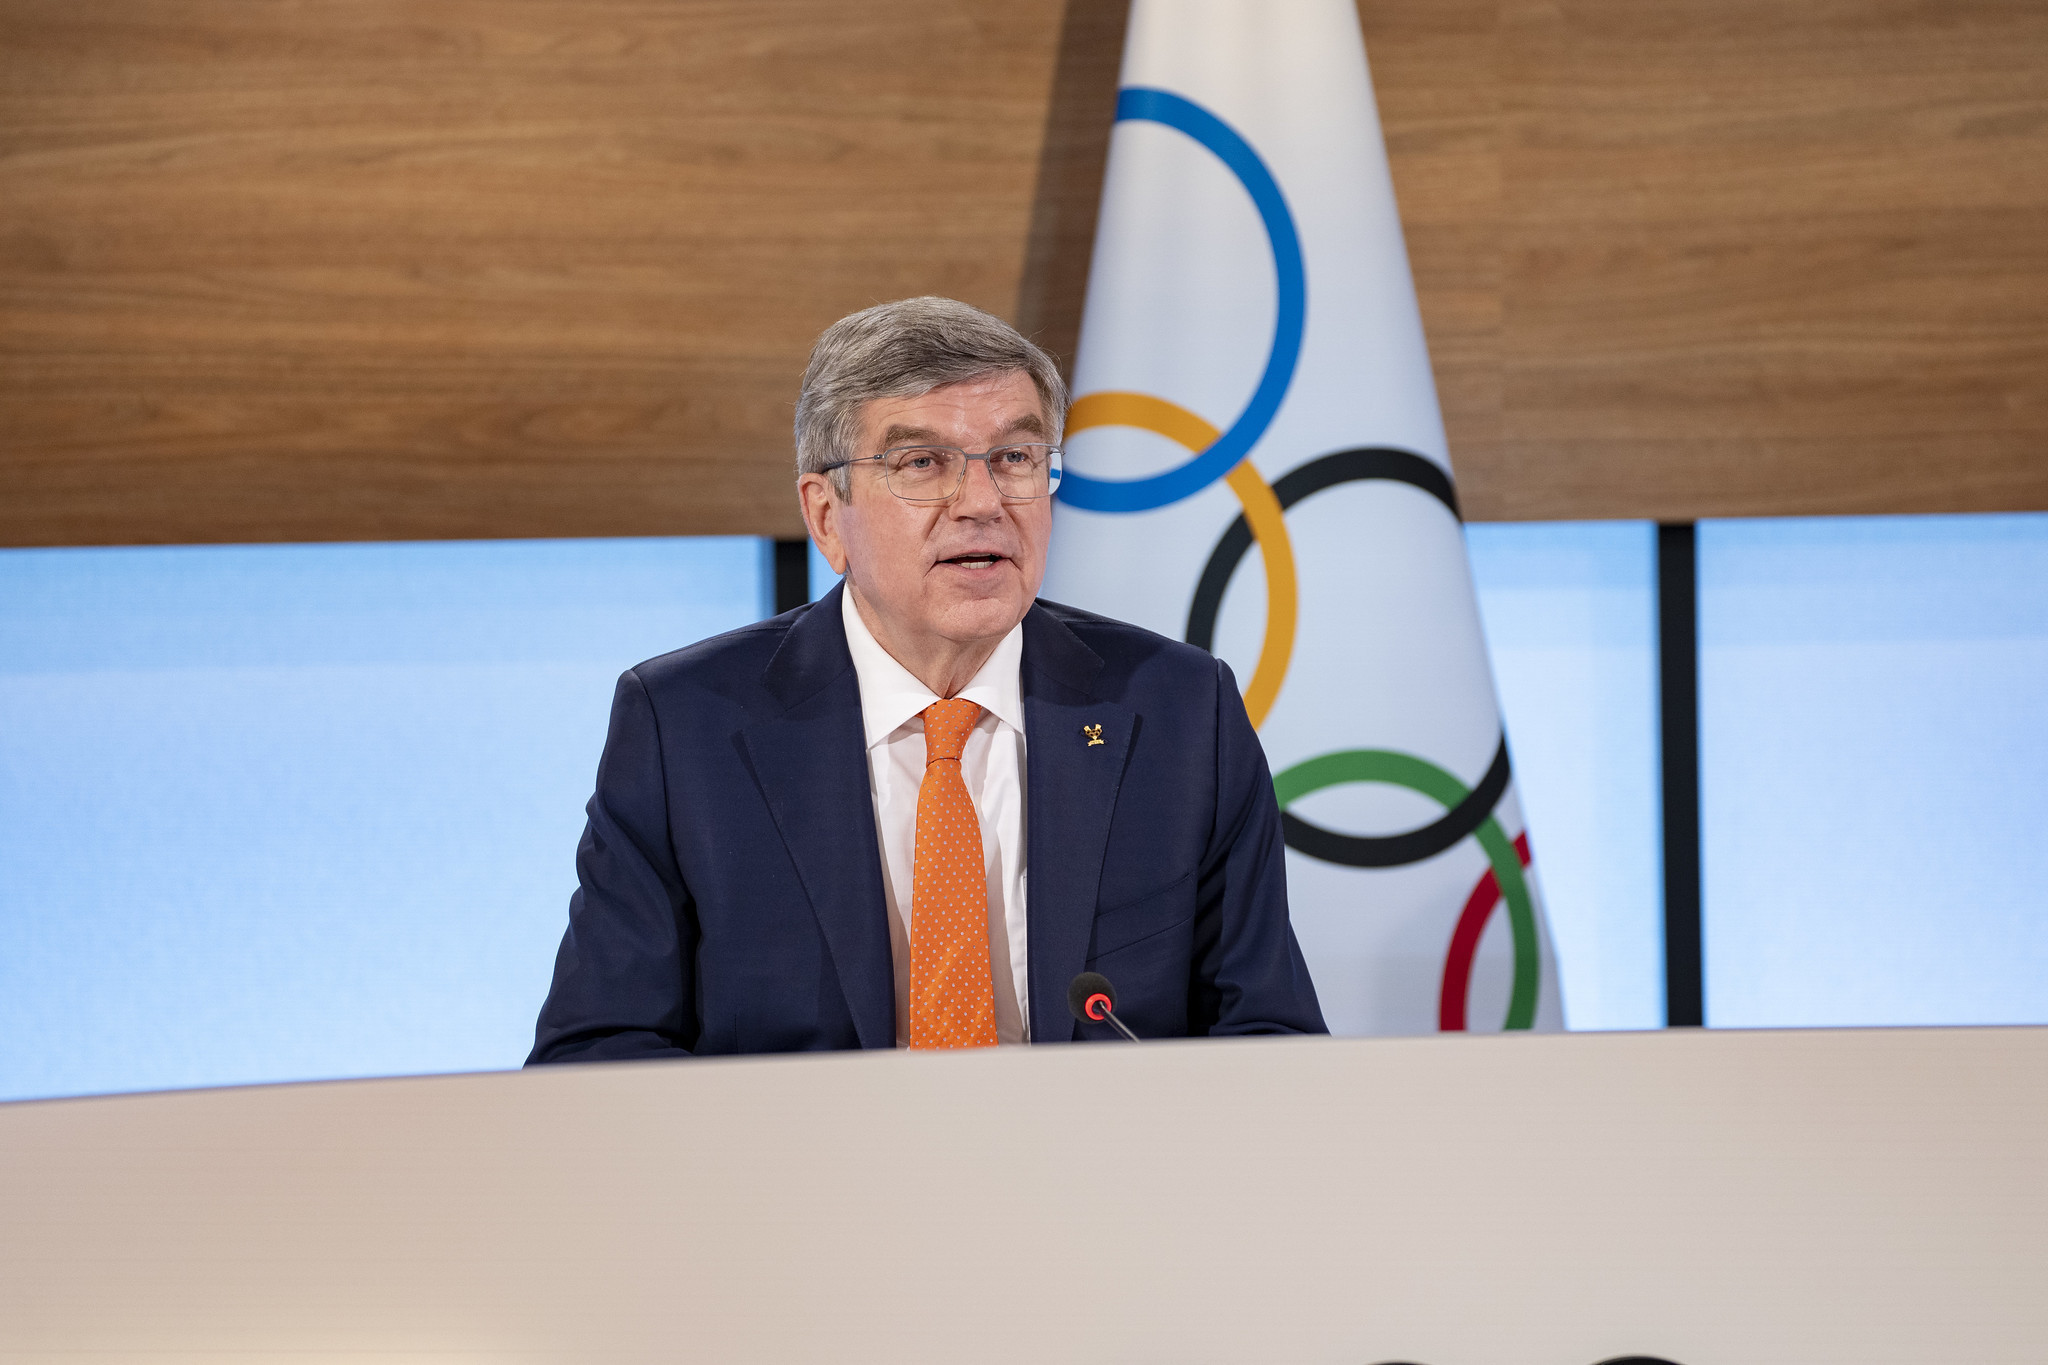 The IOC voted unanimously for closer ties with esports during today's Session ©IOC